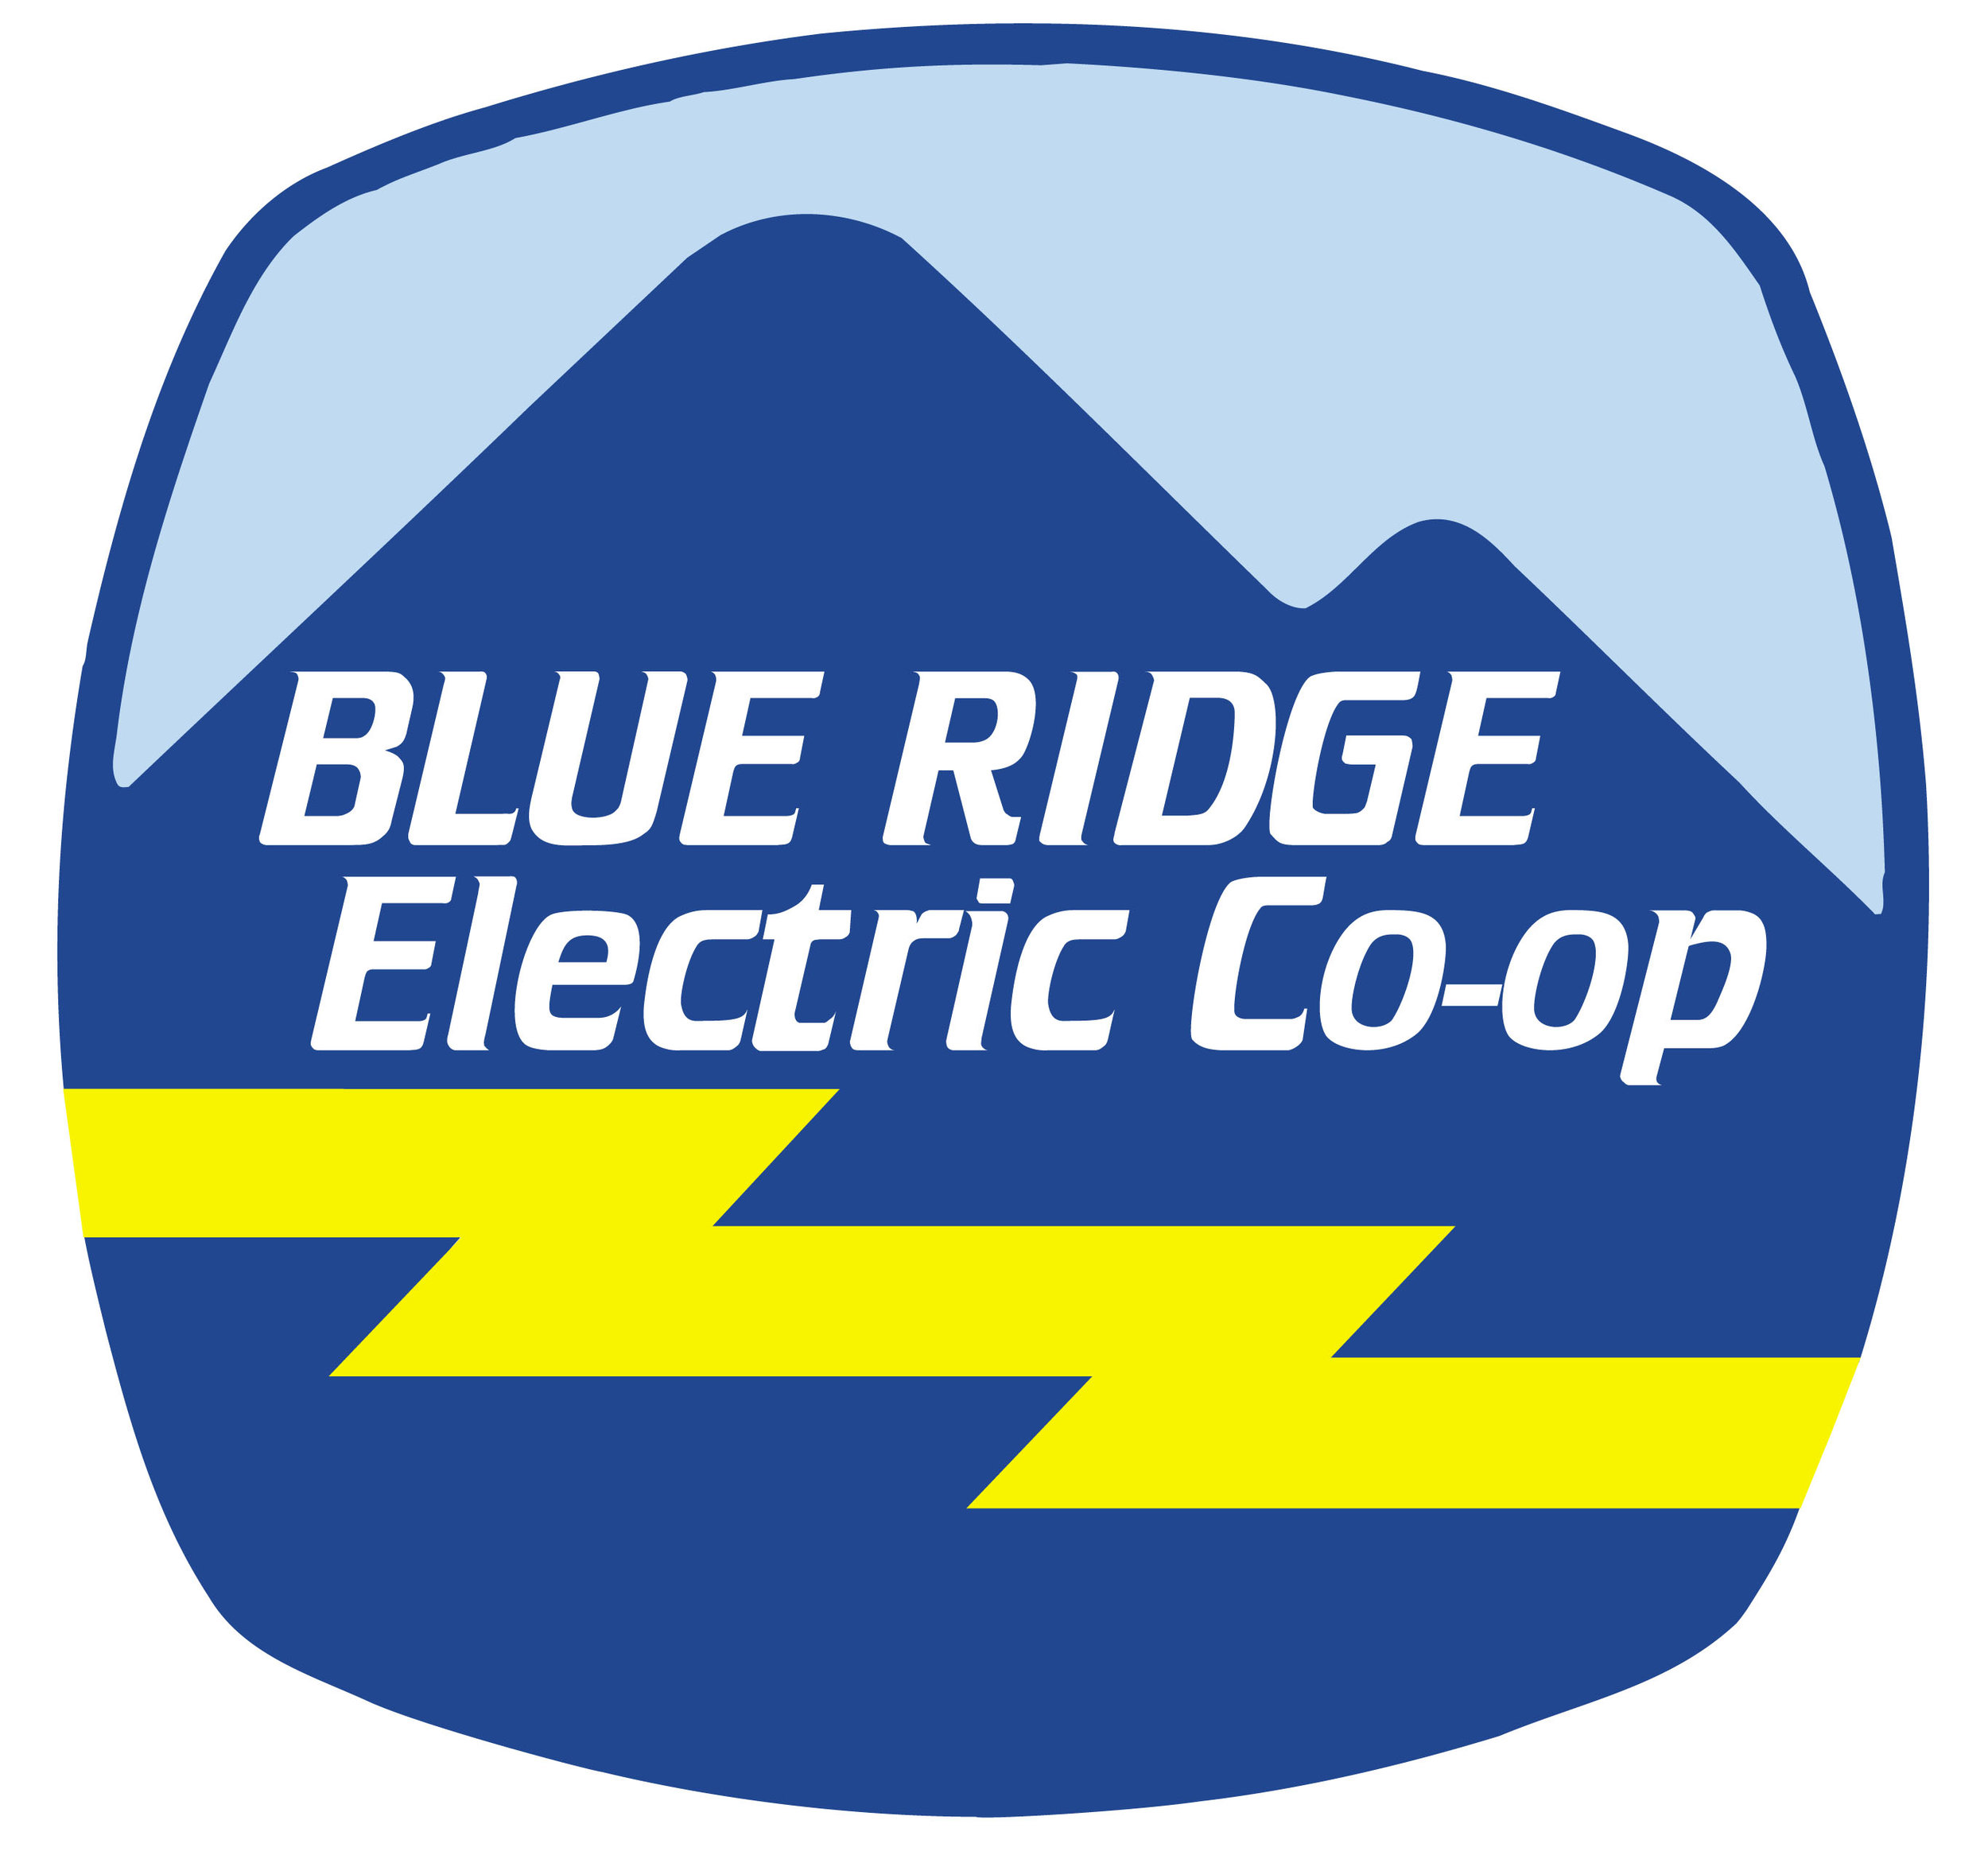 BlueRidge_logo.jpg